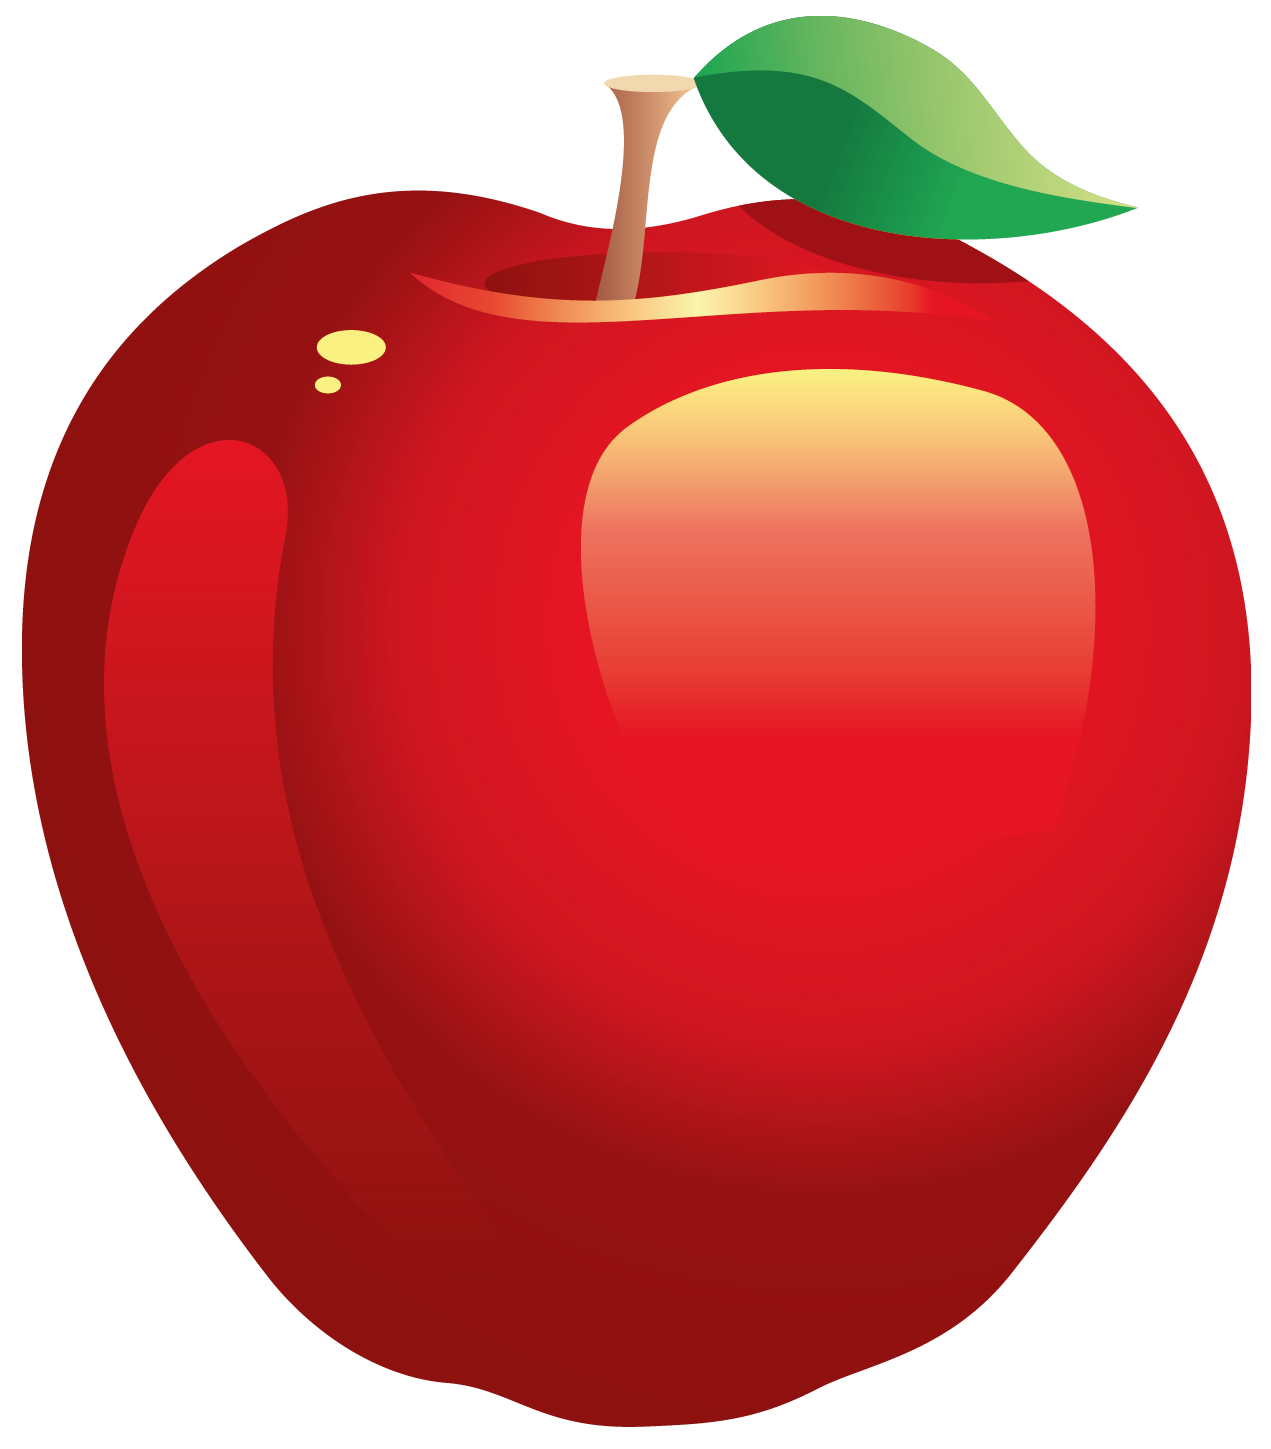 Apple clipart #9, Download drawings